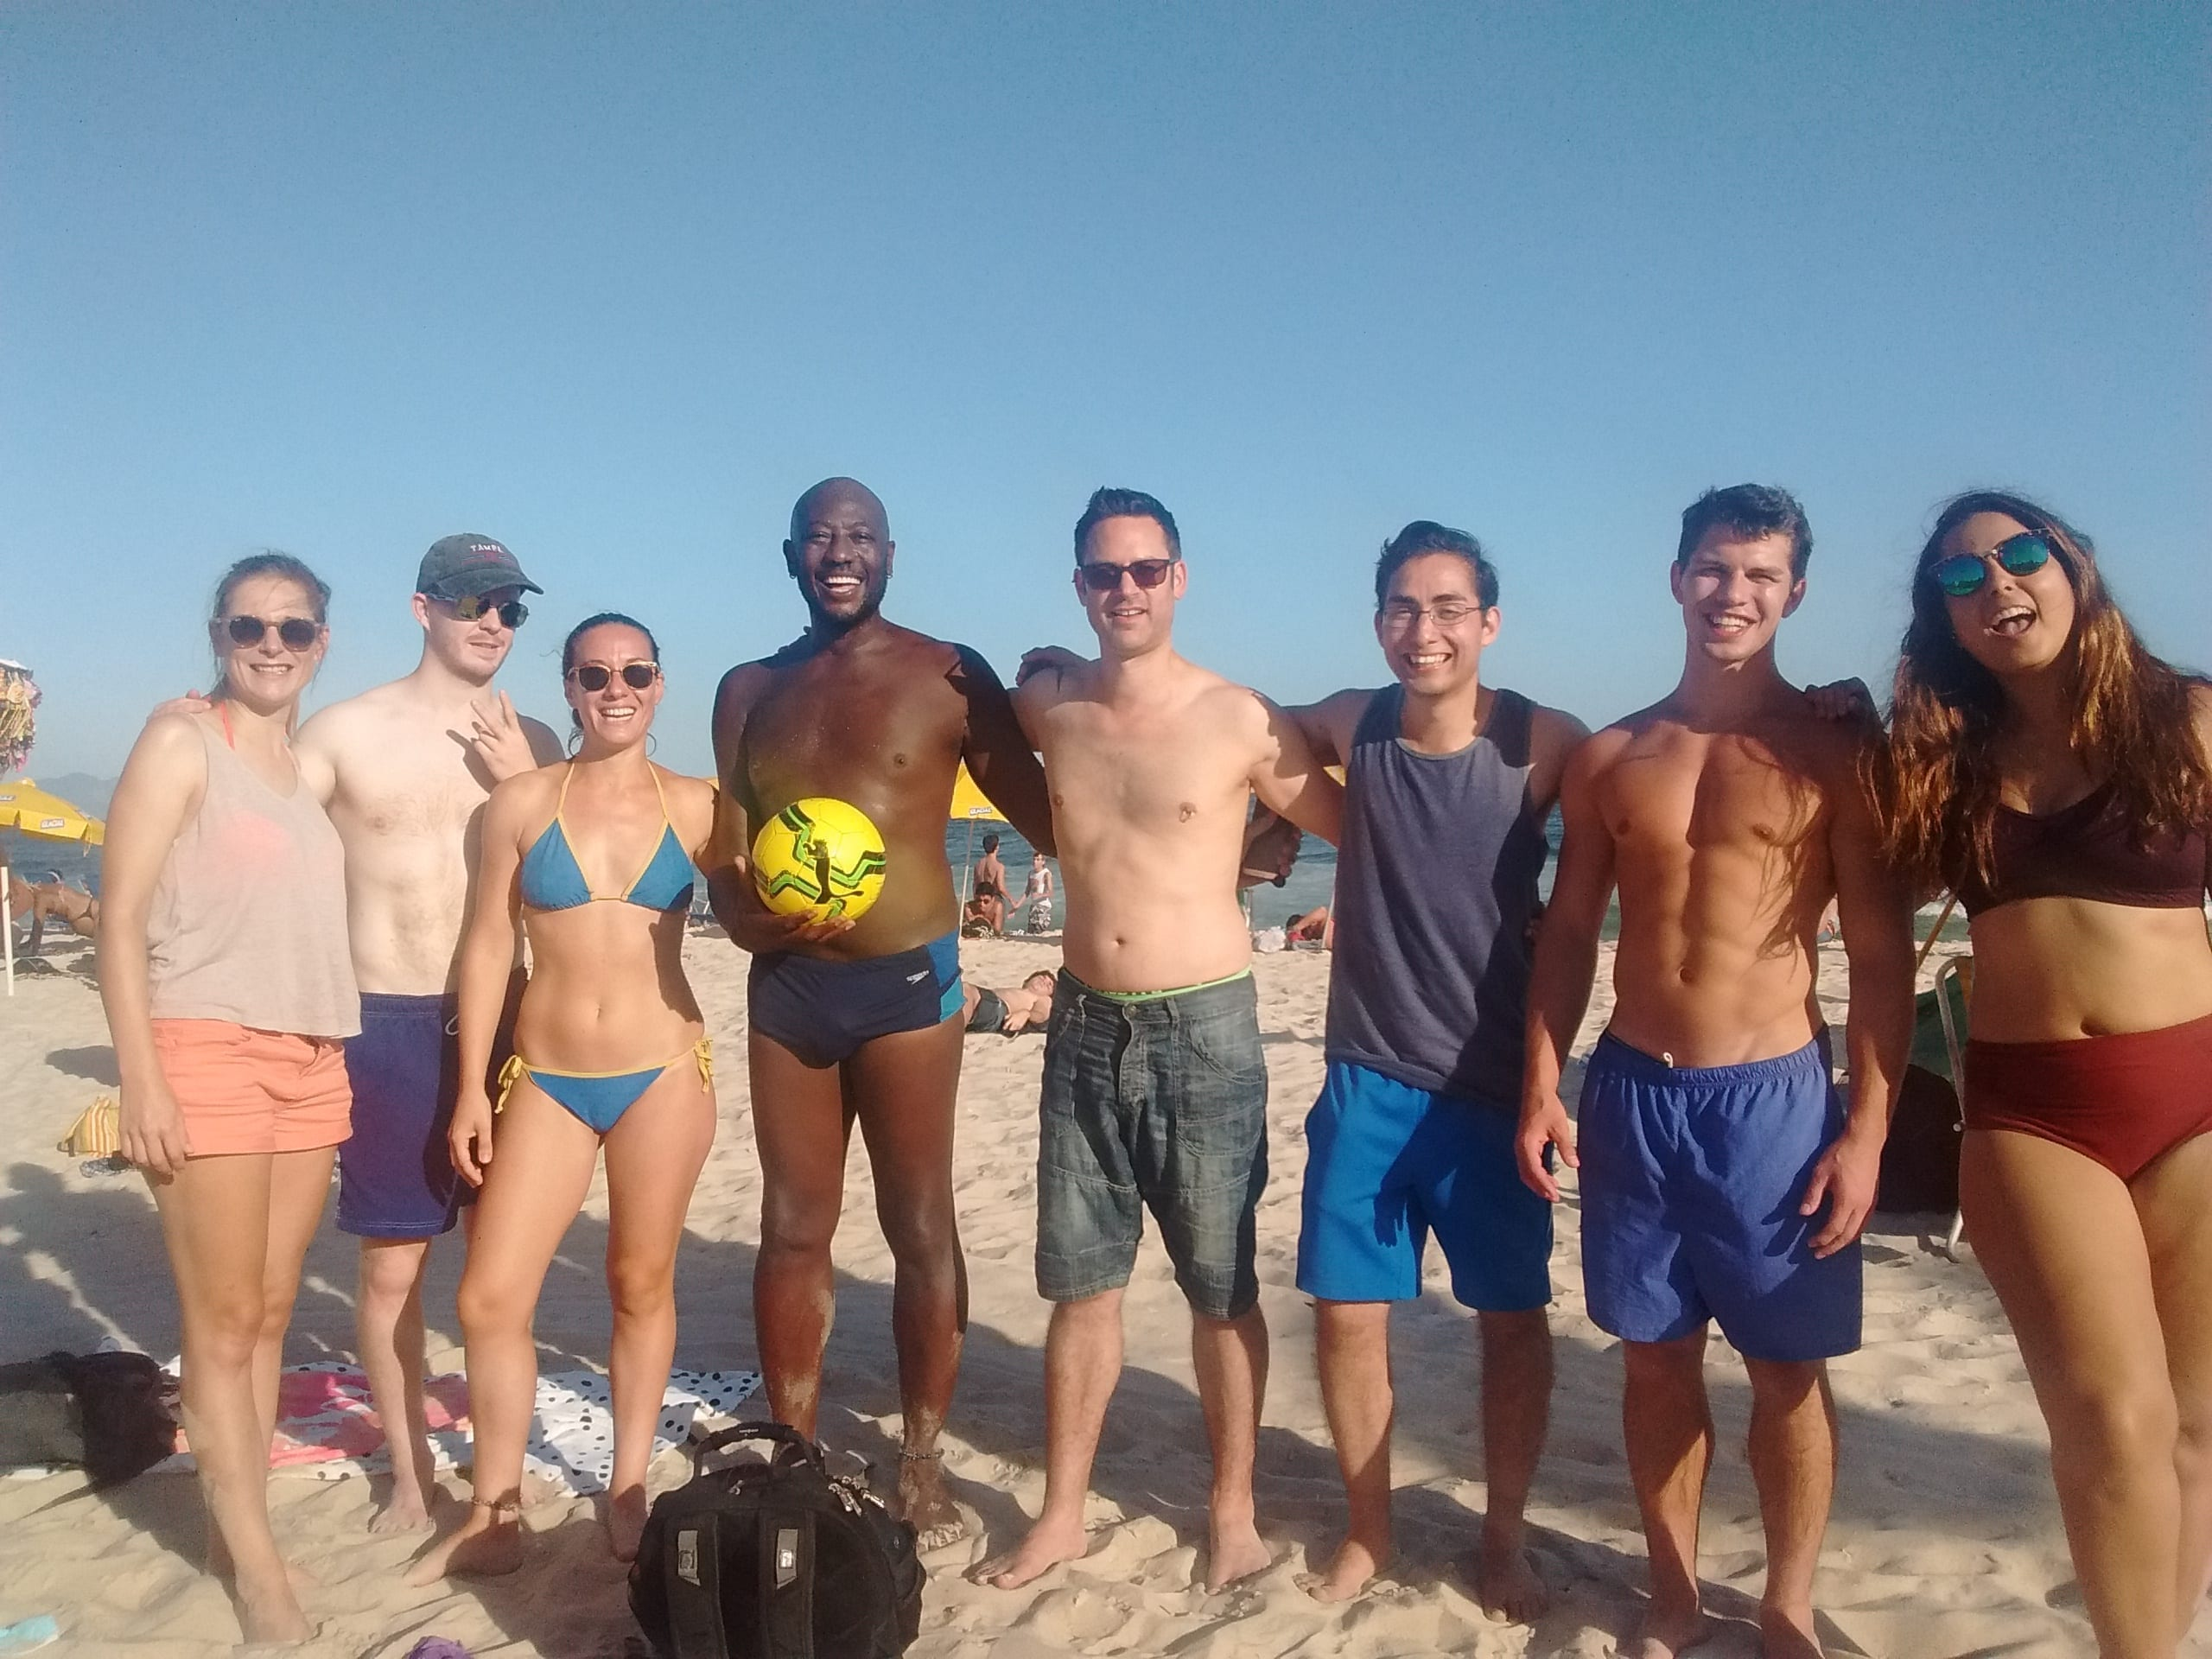 We had an amazing afternoon playing Football in Copacabana among friends.